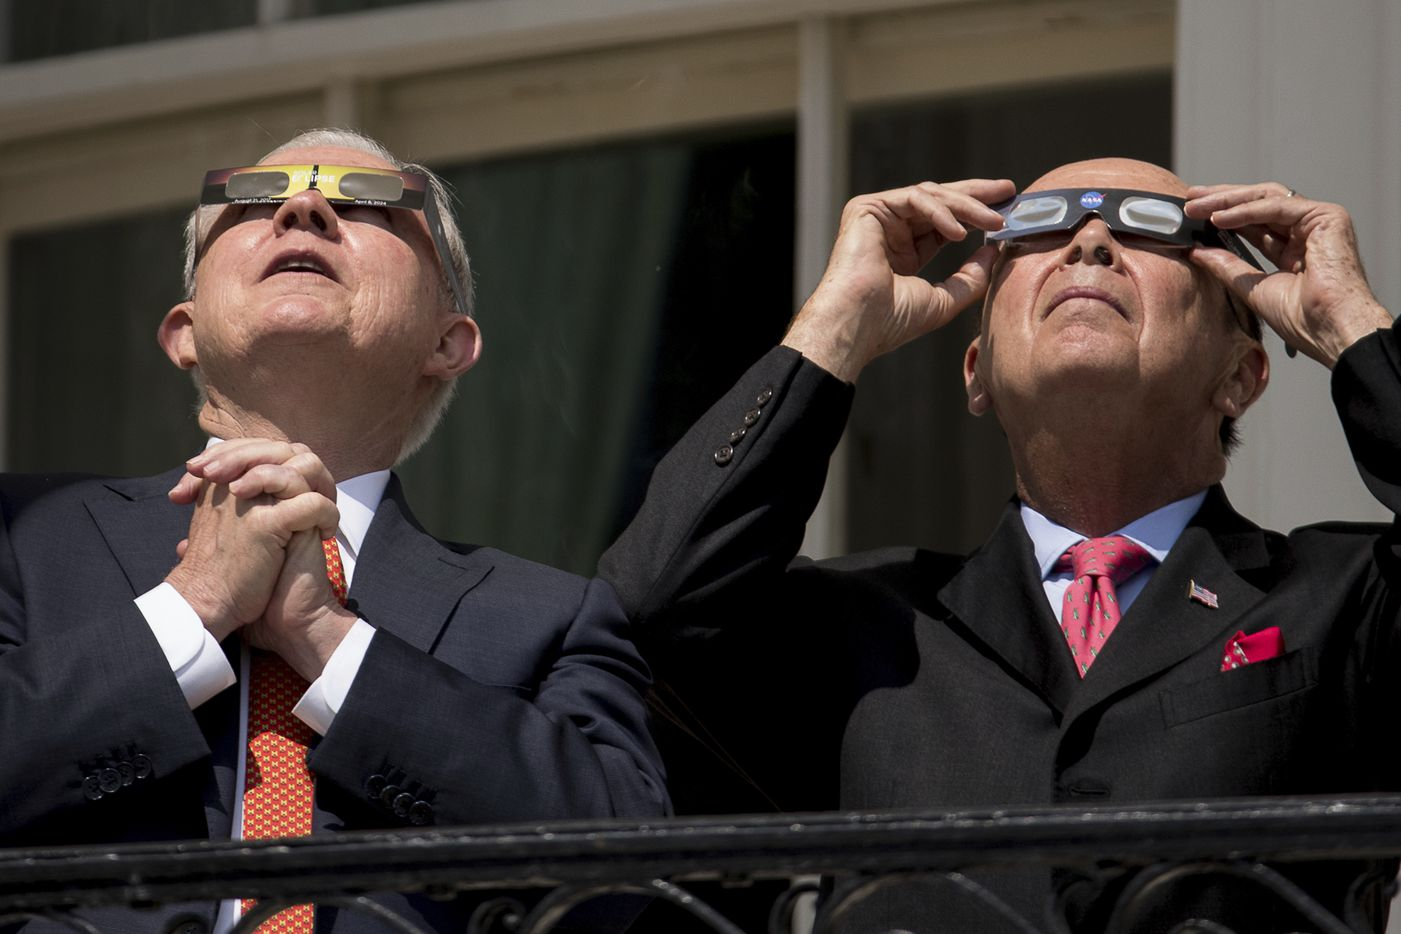 Attorney General Jeff Sessions, left, and Commerce Secretary Wilbur Ross wear protective glasses as they view the solar eclipse at the White House.